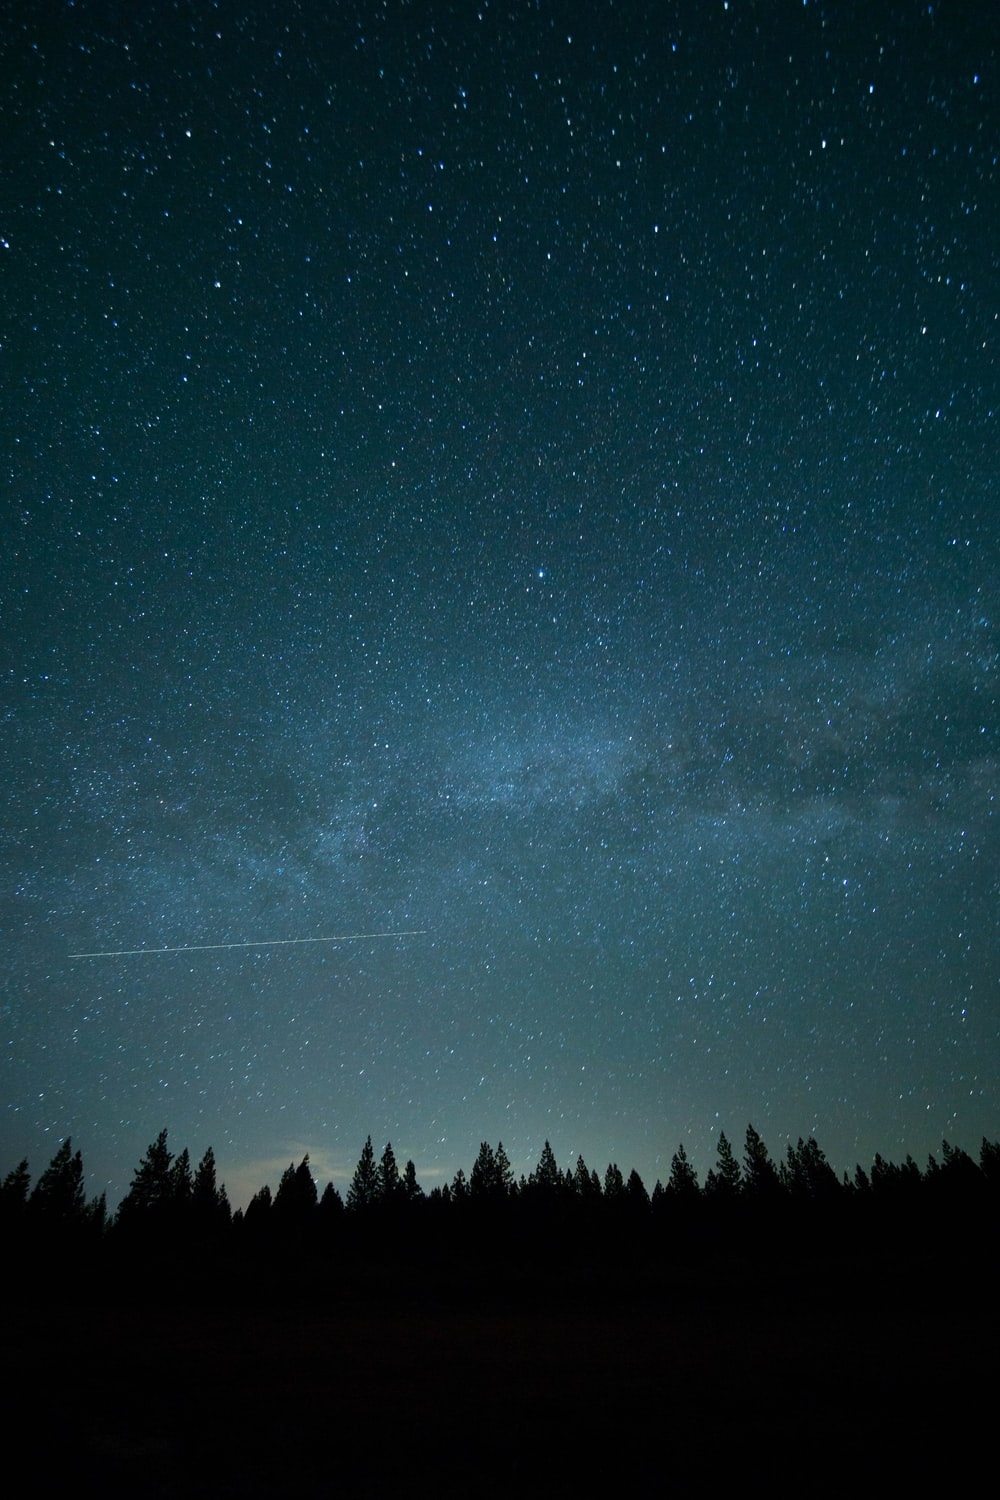 trees under blue sky and stars during nighttime photo